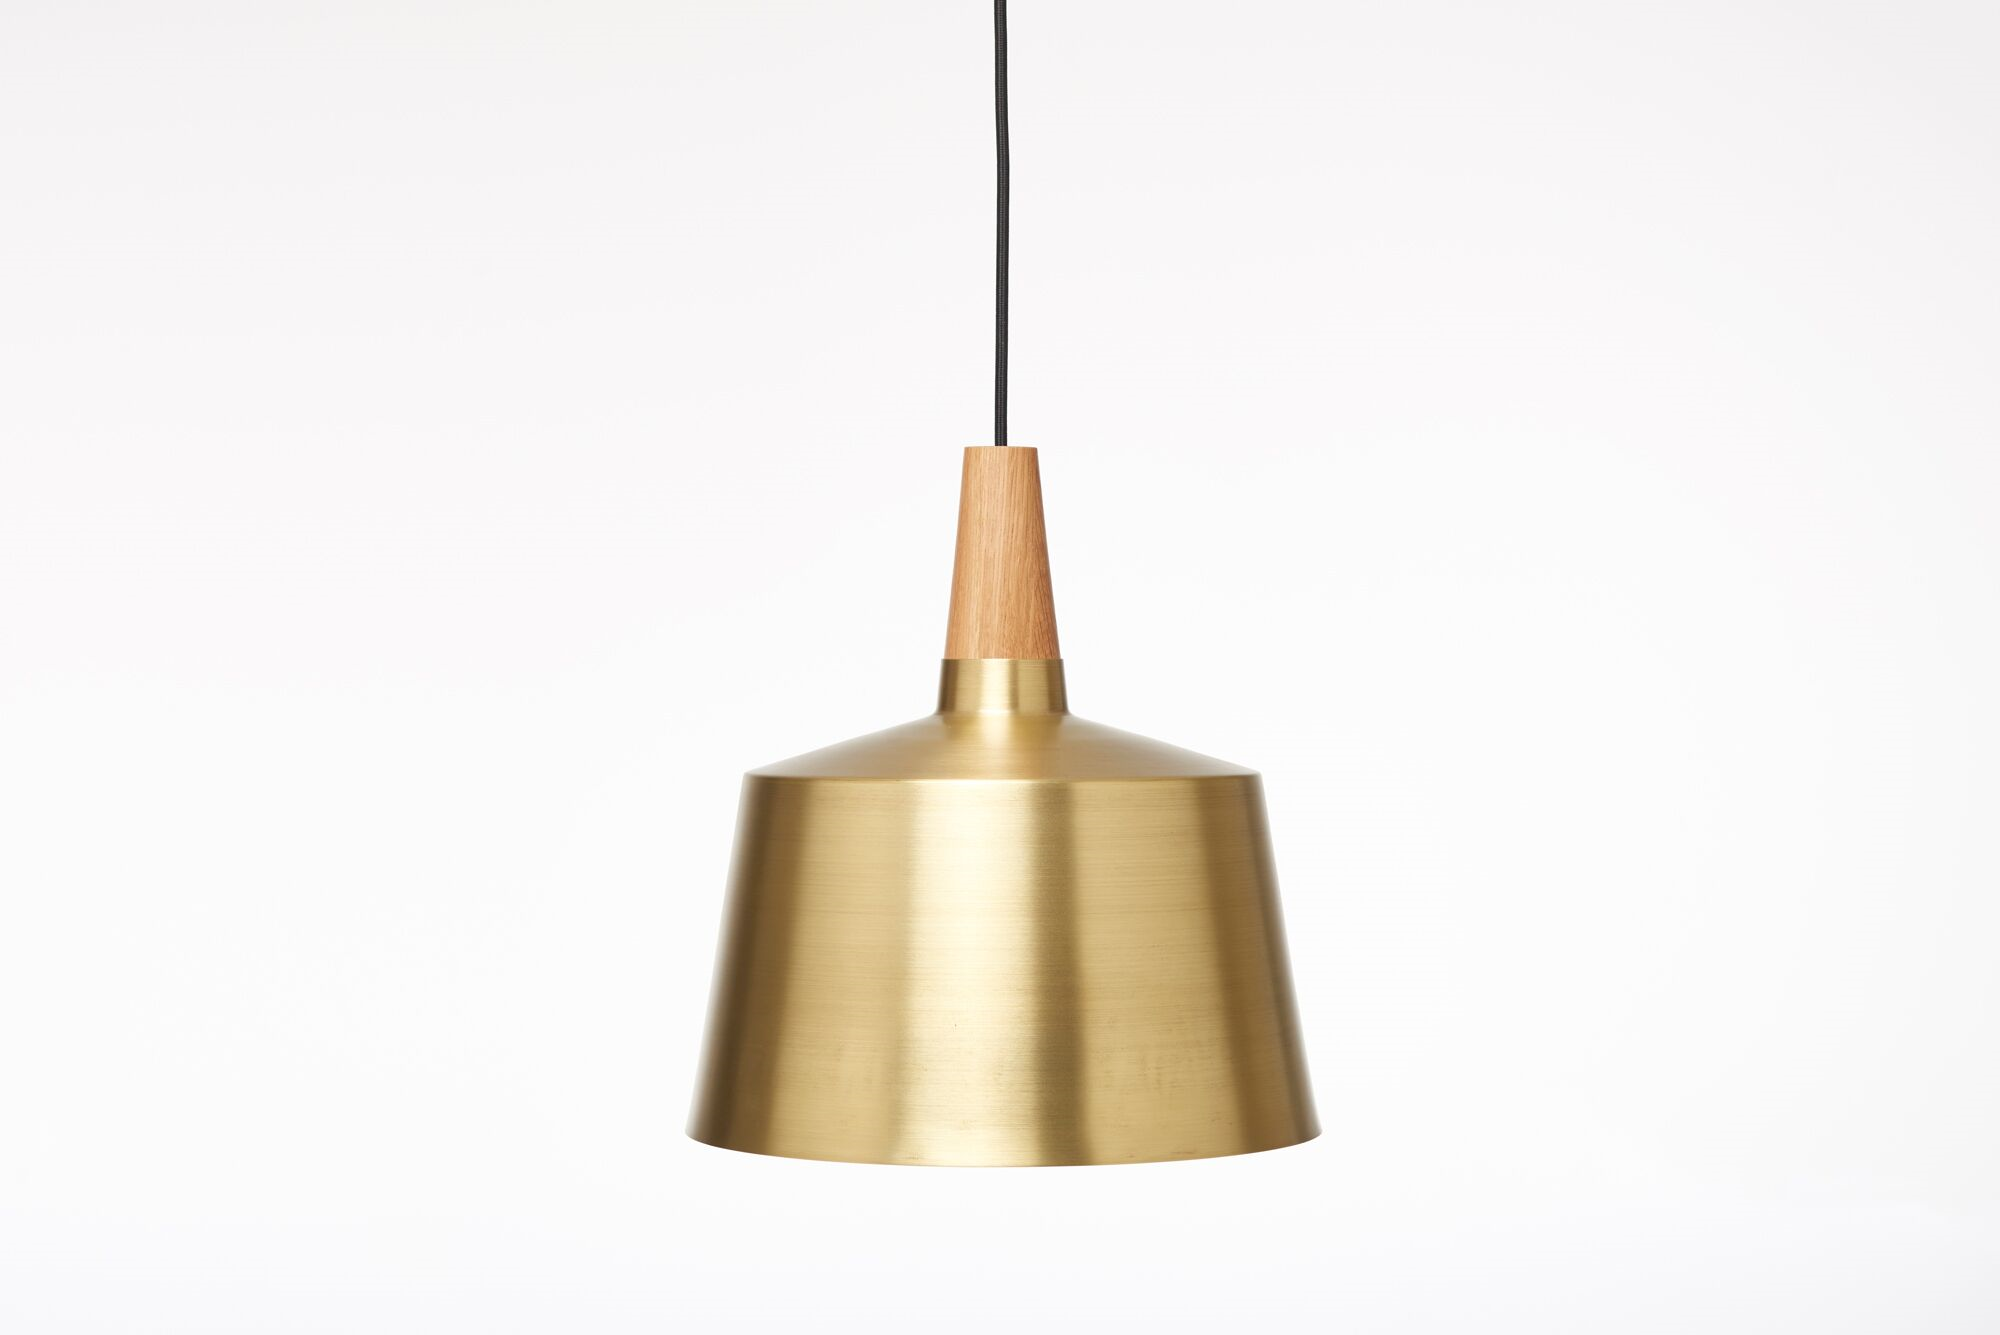 Gallery Of Morse Pendant By Apparentt Local Australian Furniture & Lighting Design Richmond, Melbourne Image 4